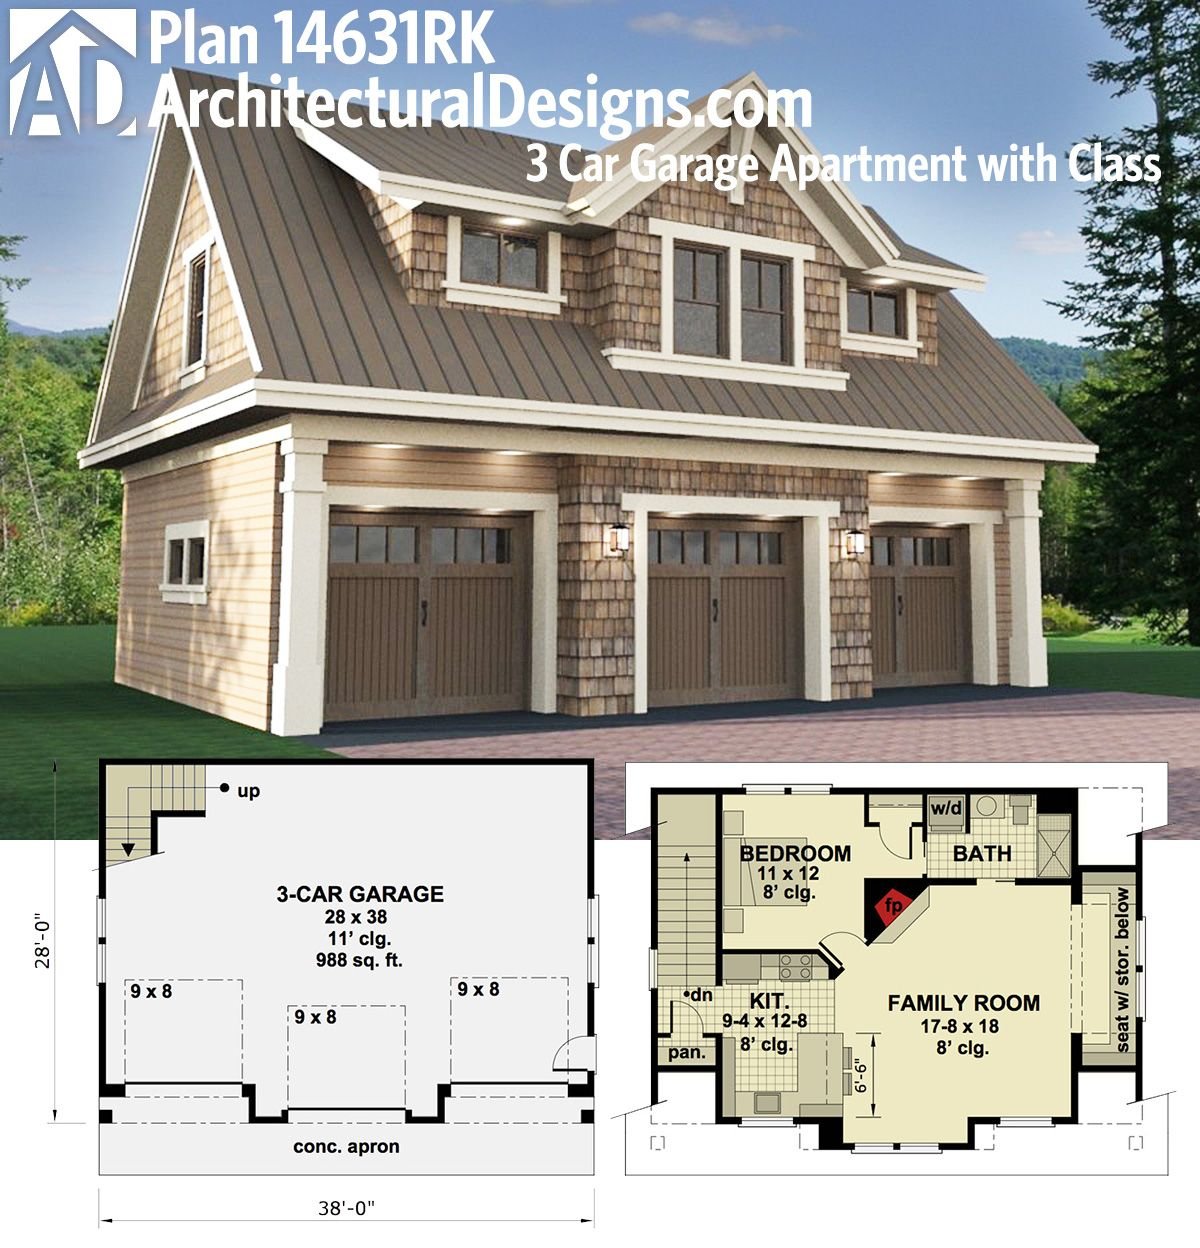 Plan 14631rk 3 car garage apartment with class carriage for Garage apartment plans 2 car